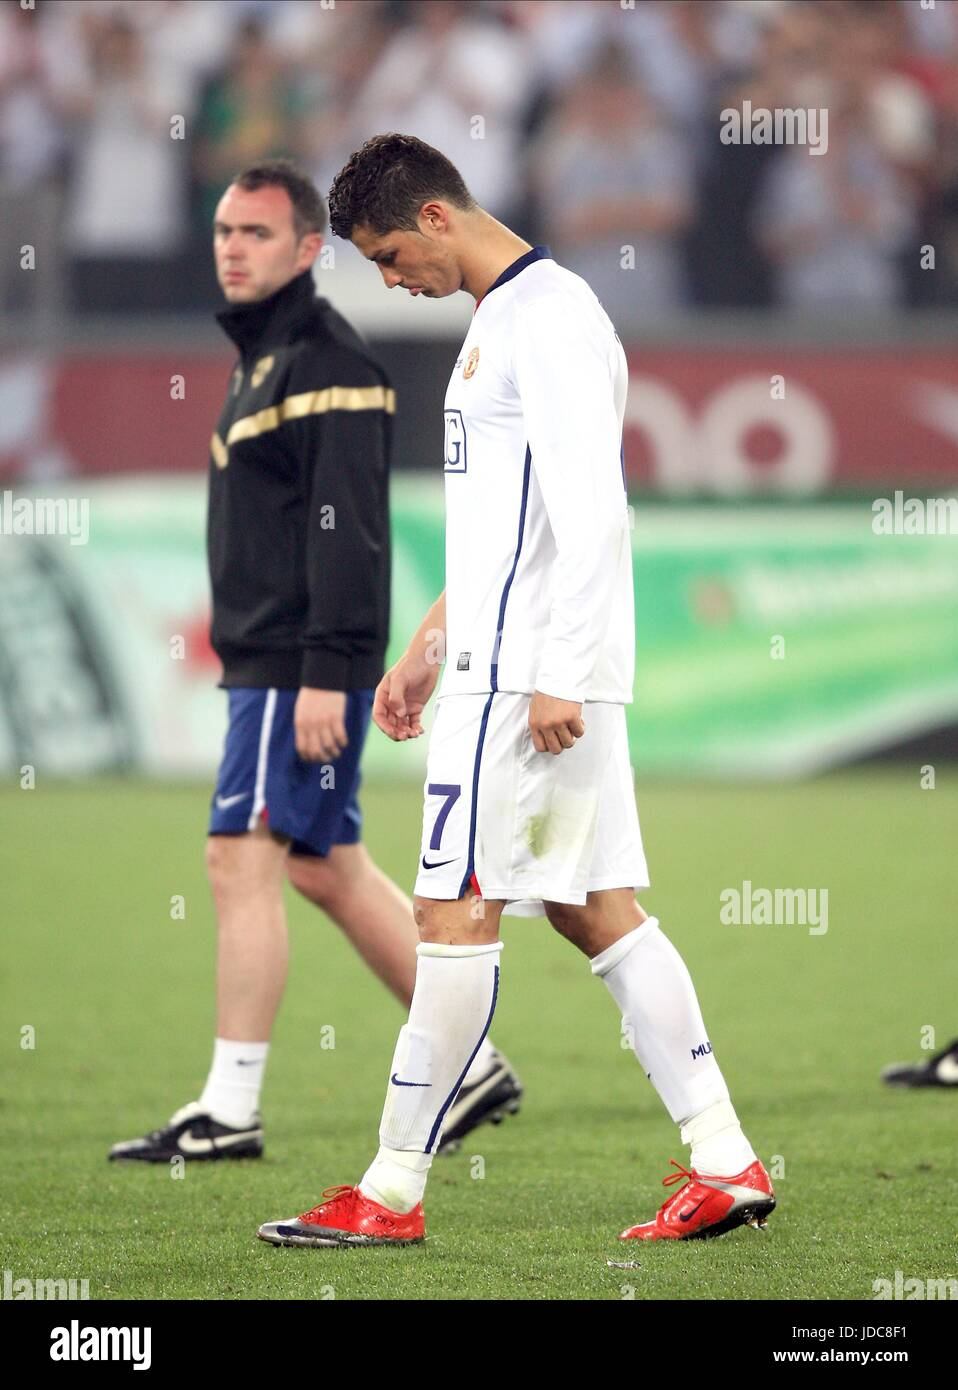 Barcelona Vs Man United 2009 : barcelona, united, CRISTIANO, RONALDO, AFTER, DEFEAT, BARCELONA, MANCHESTER, UNITED, STADIO, Stock, Photo, Alamy